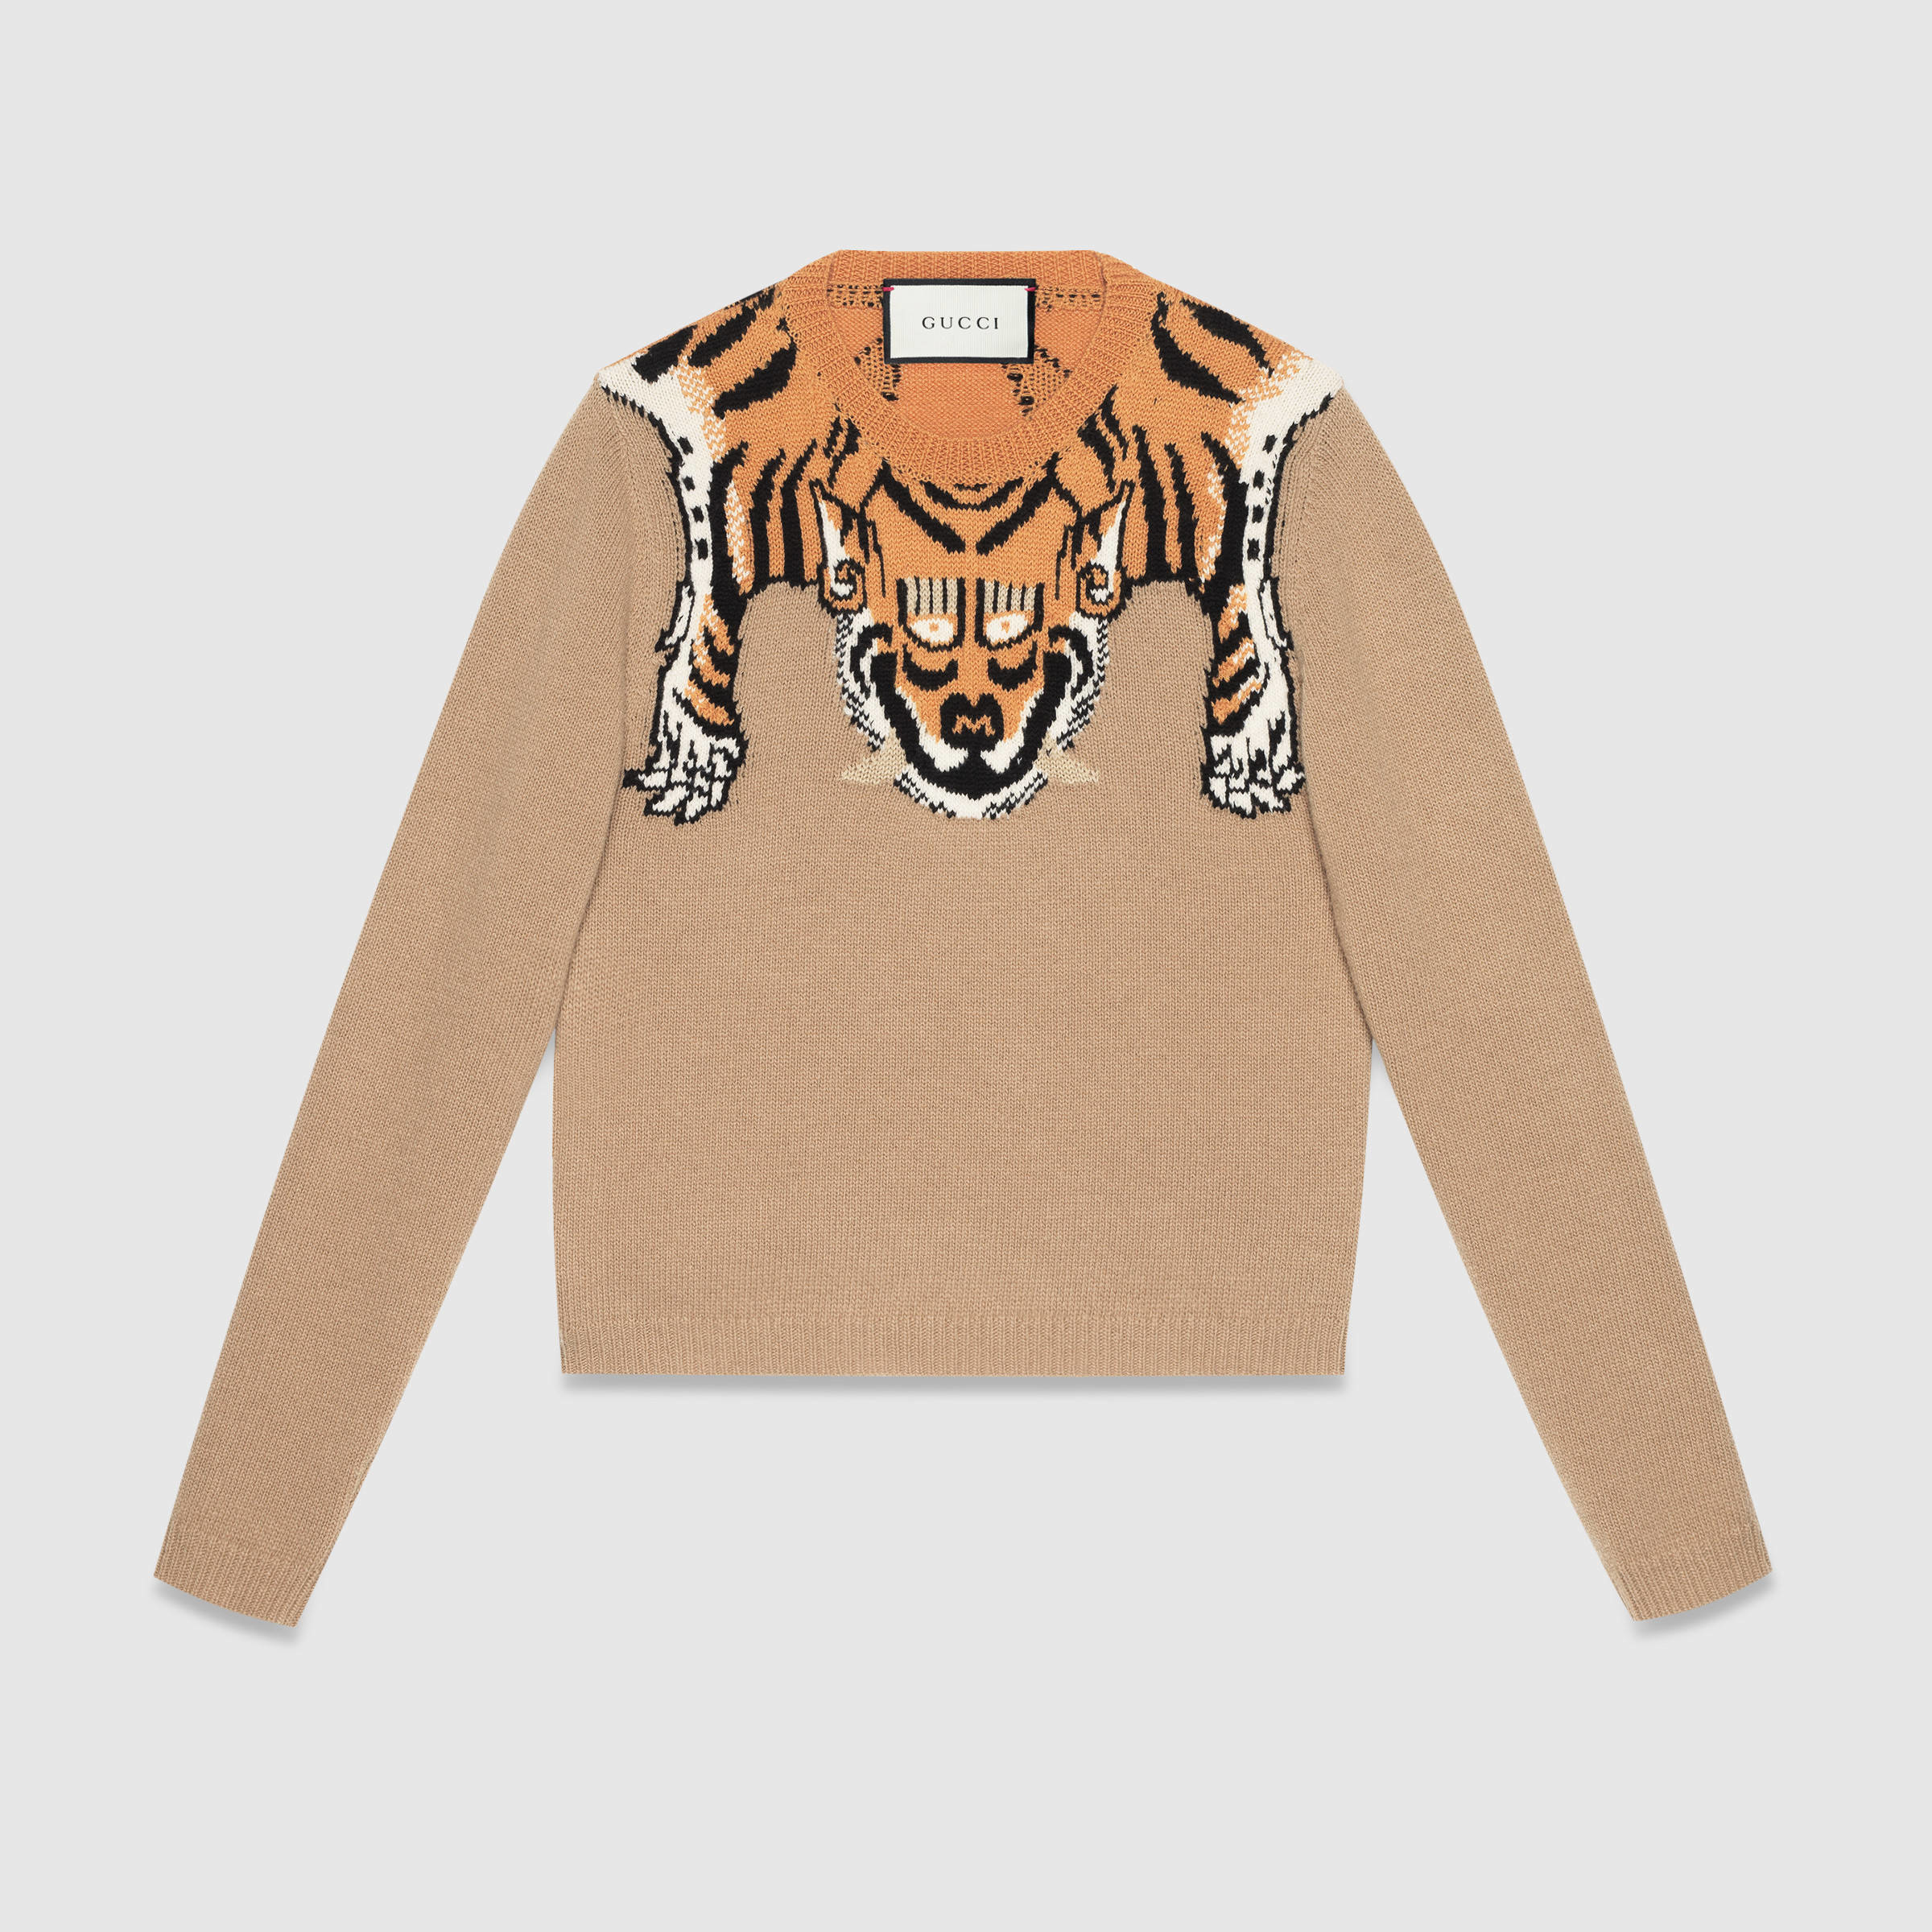 5989339299ce5 Lyst - Gucci Wool Sweater With Tiger for Men